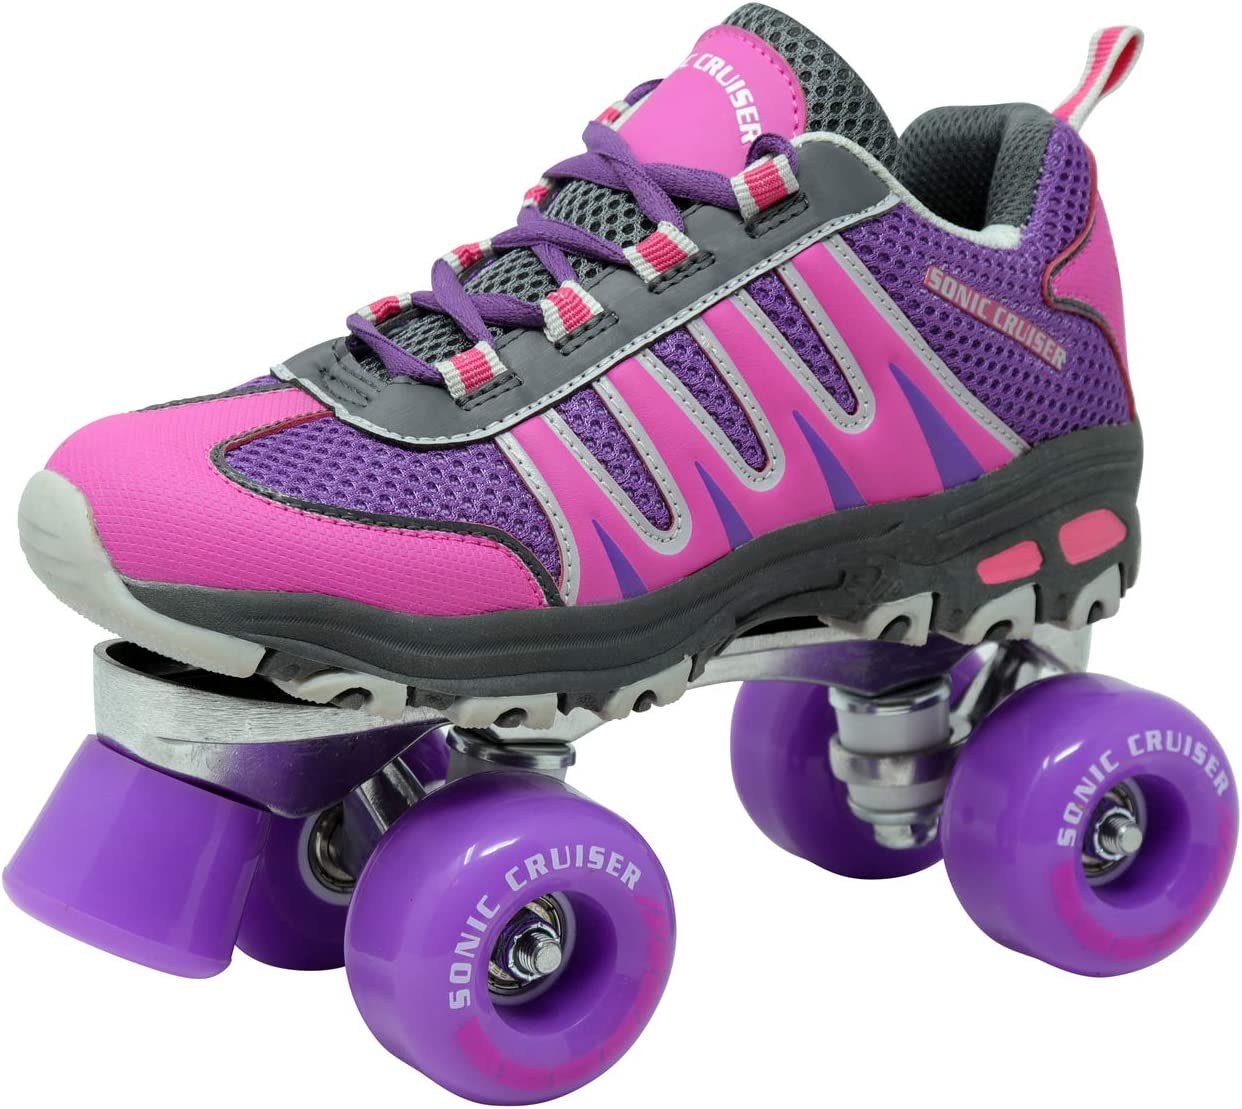 Lenexa Sonic Cruiser 2.0 Unisex Outdoor High Performance Rebound Wheels Quad Roller Speed Skate